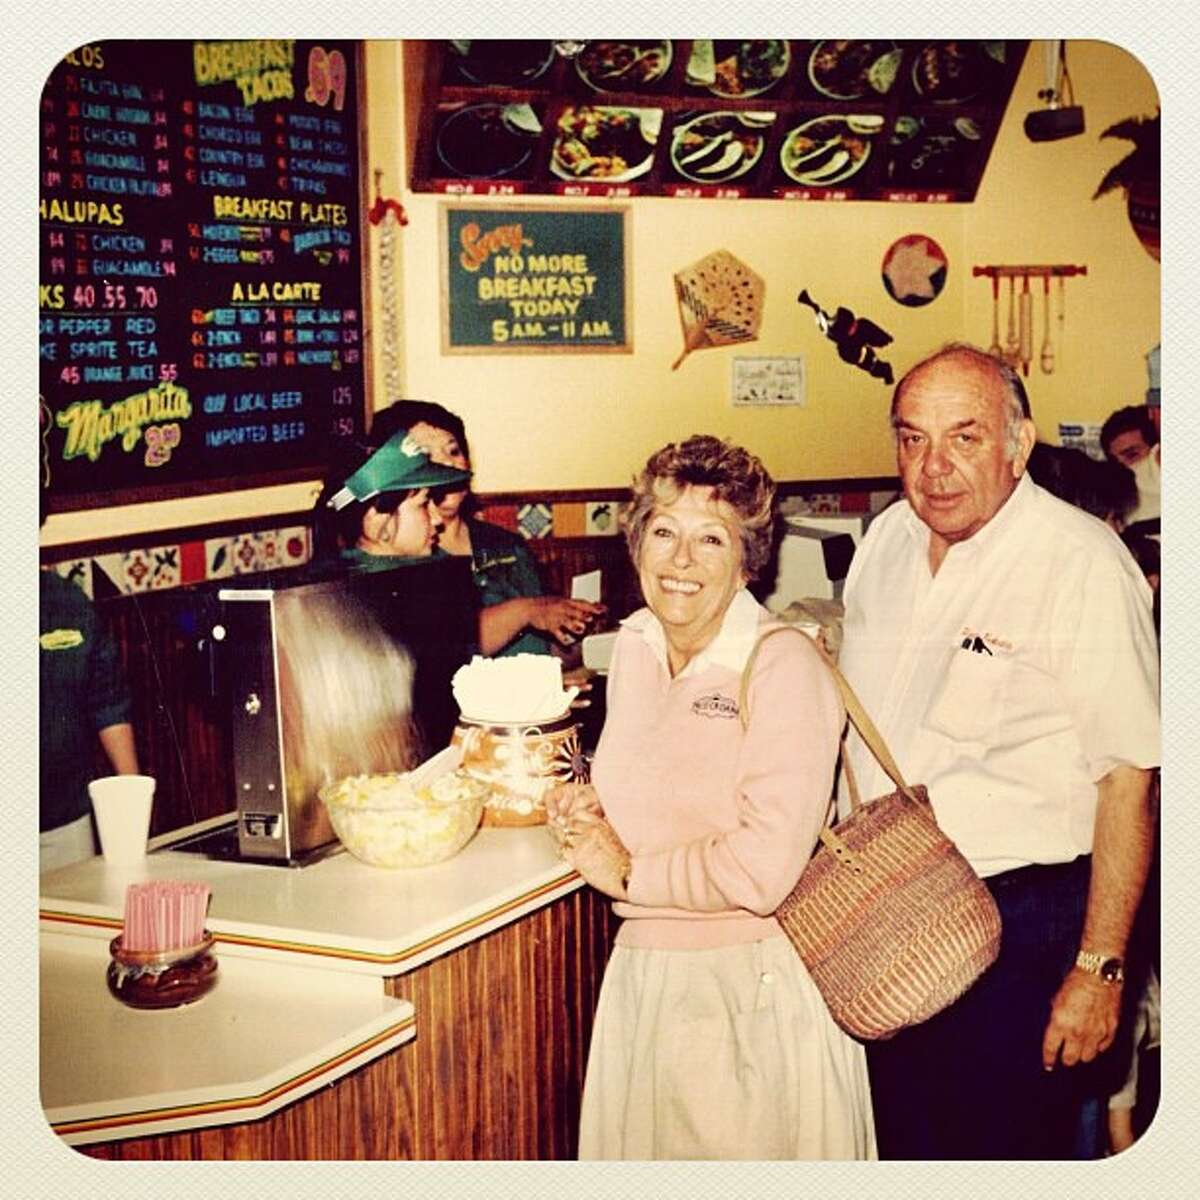 Taco Cabana founders Felix and Billie Jo Stehling in one of their restaurants.